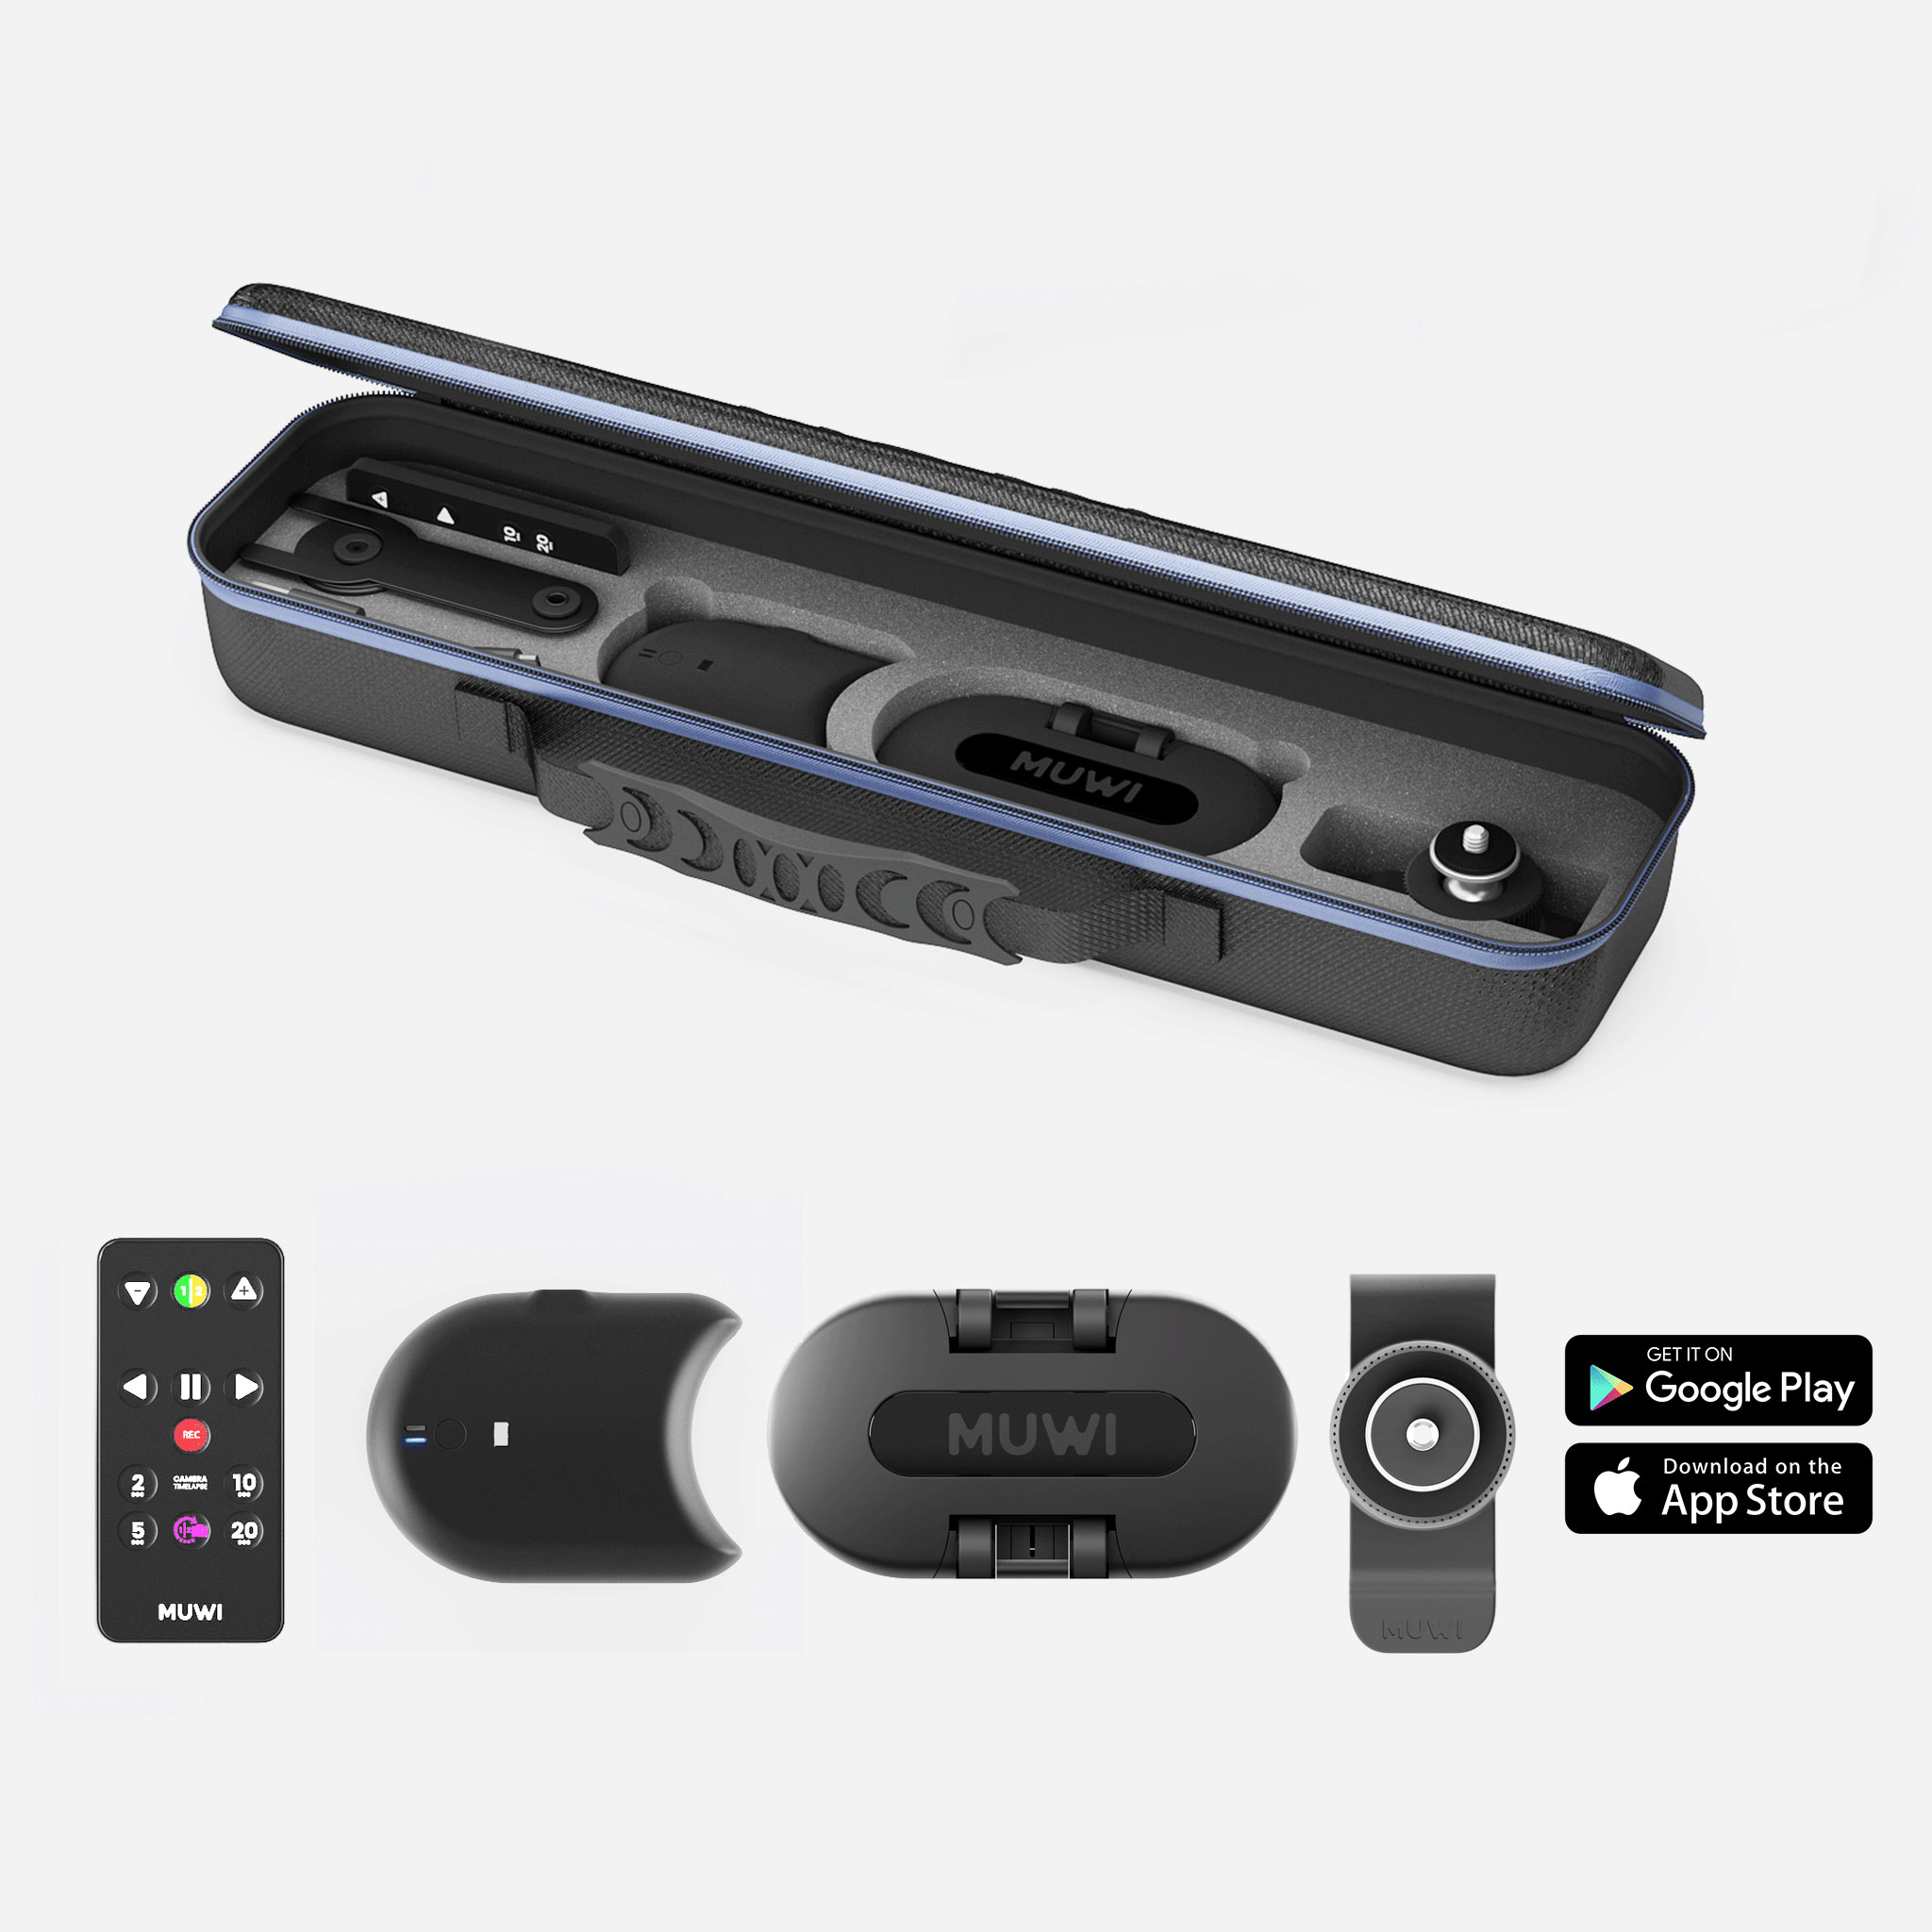 Duo Pack Smart includes Muwi, Flow X, motorized module, and Swivel Clip